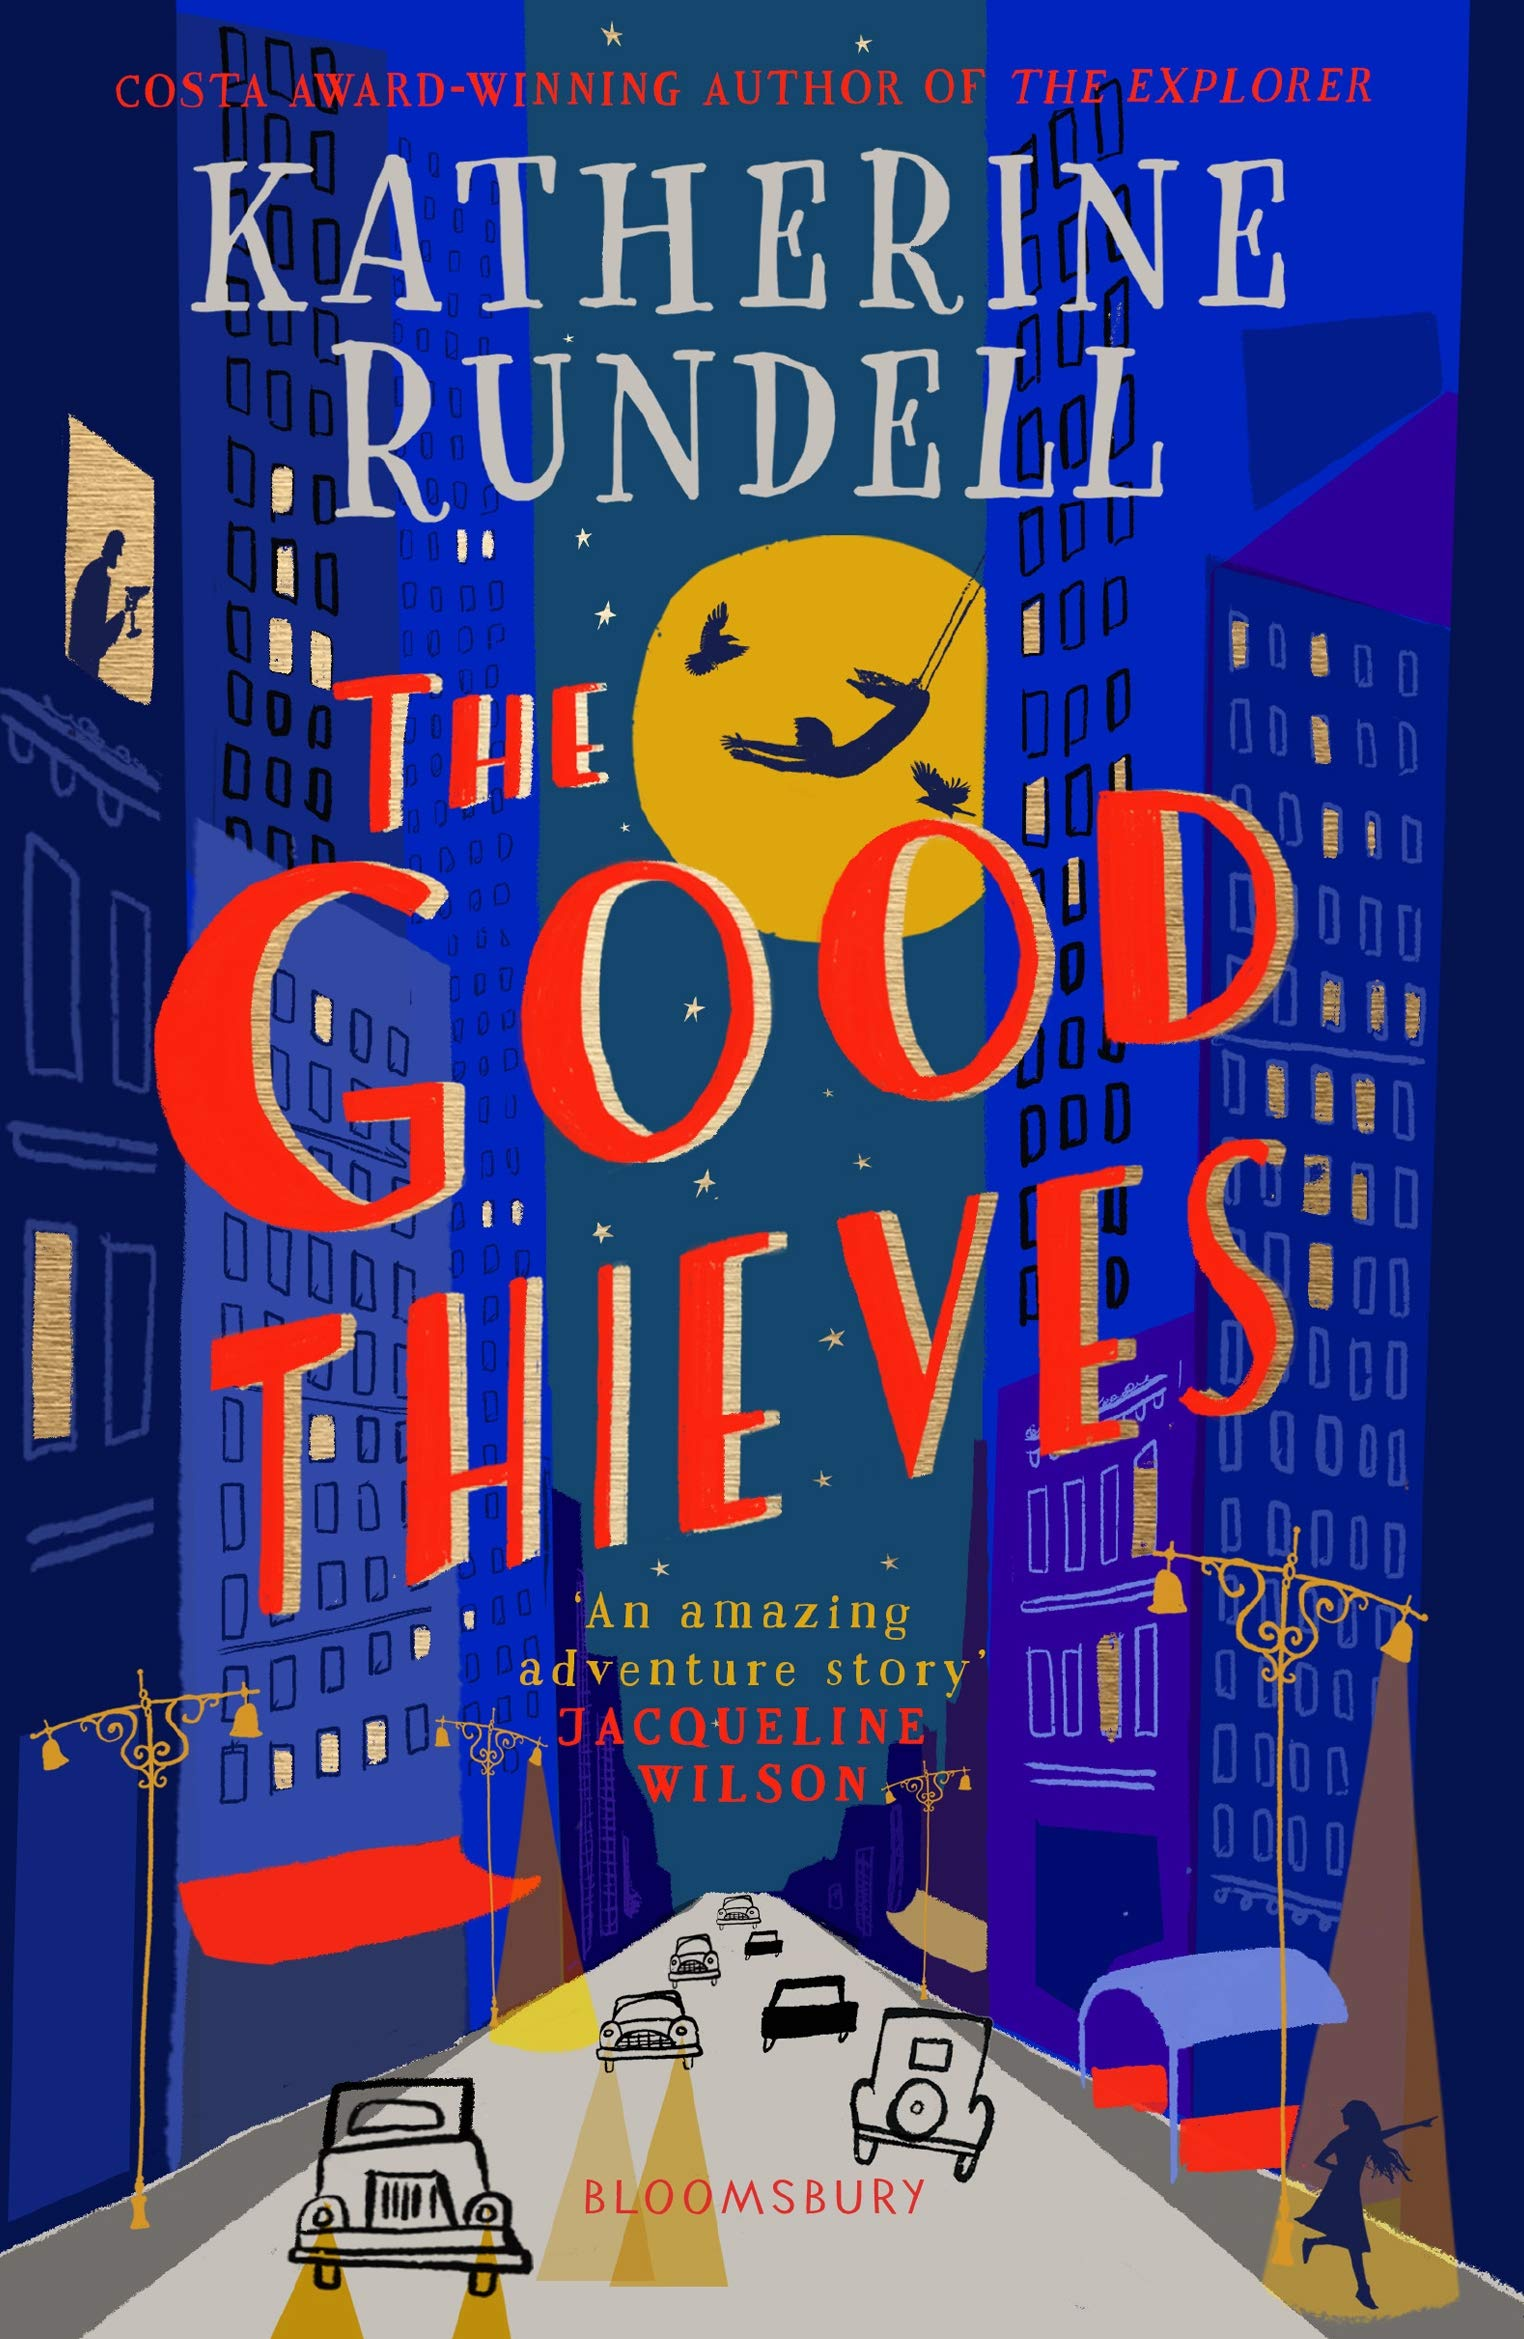 The Good Thieves: Amazon.co.uk: Rundell, Katherine: Books